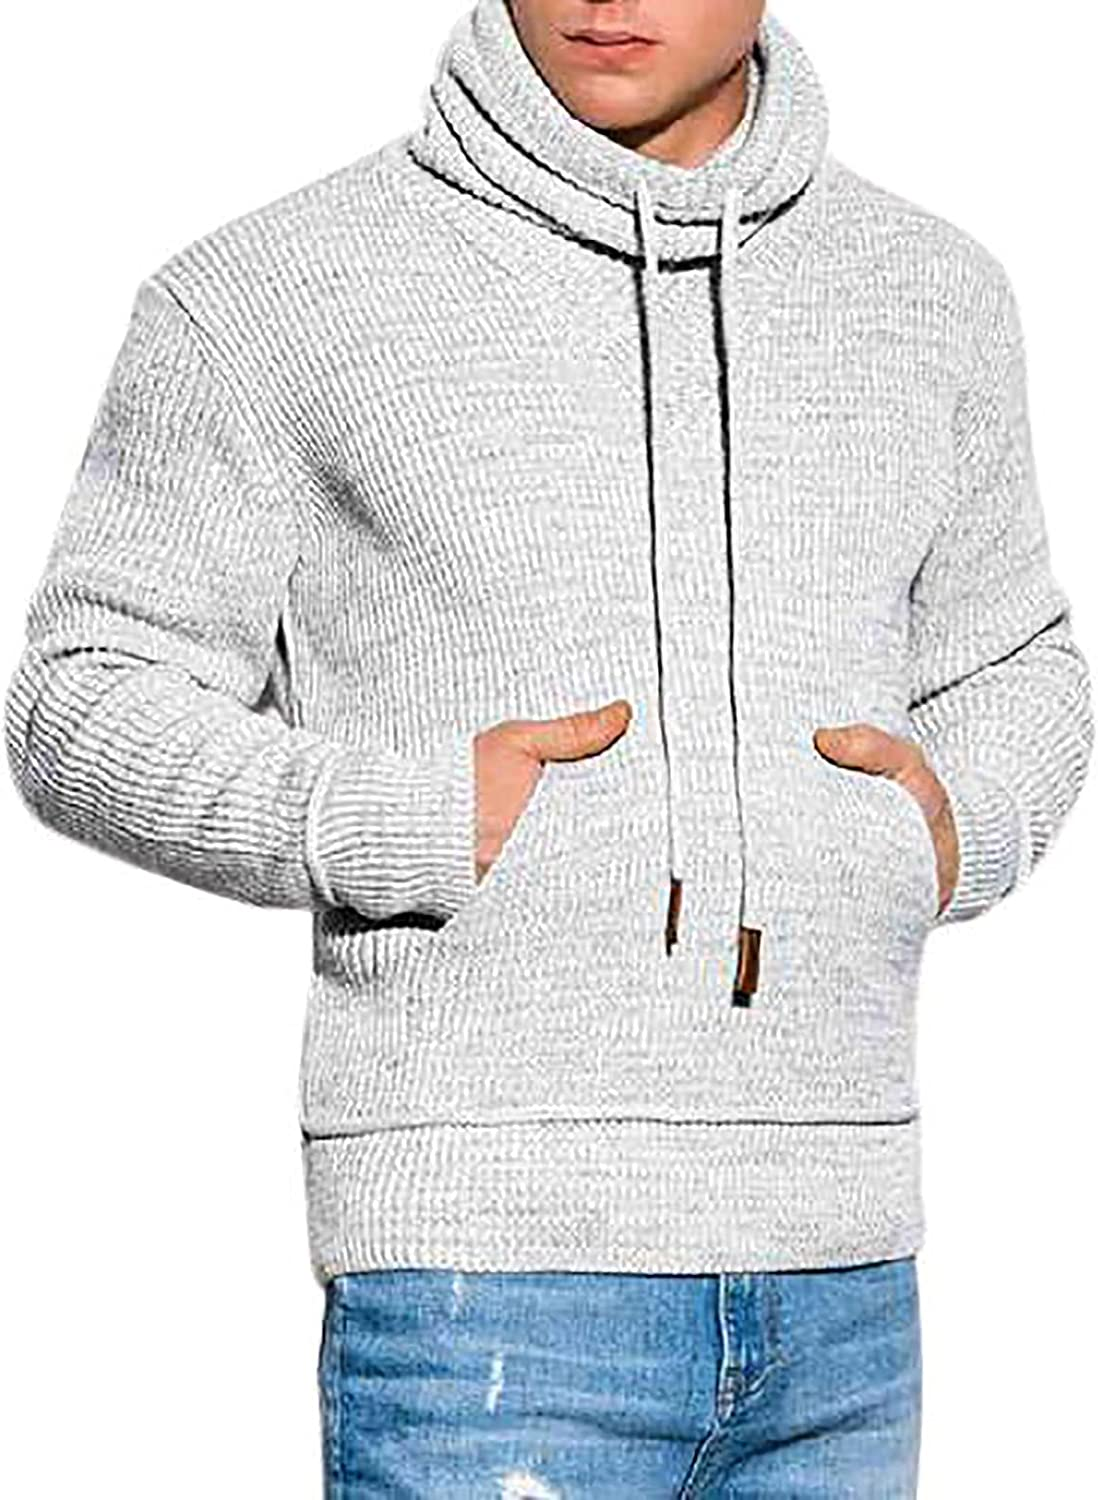 Turtleneck for Men's Knitwear Sweaters Fashion Plus Size Long Sleeve Cable Knited Thick Thermal Pullover Jacket